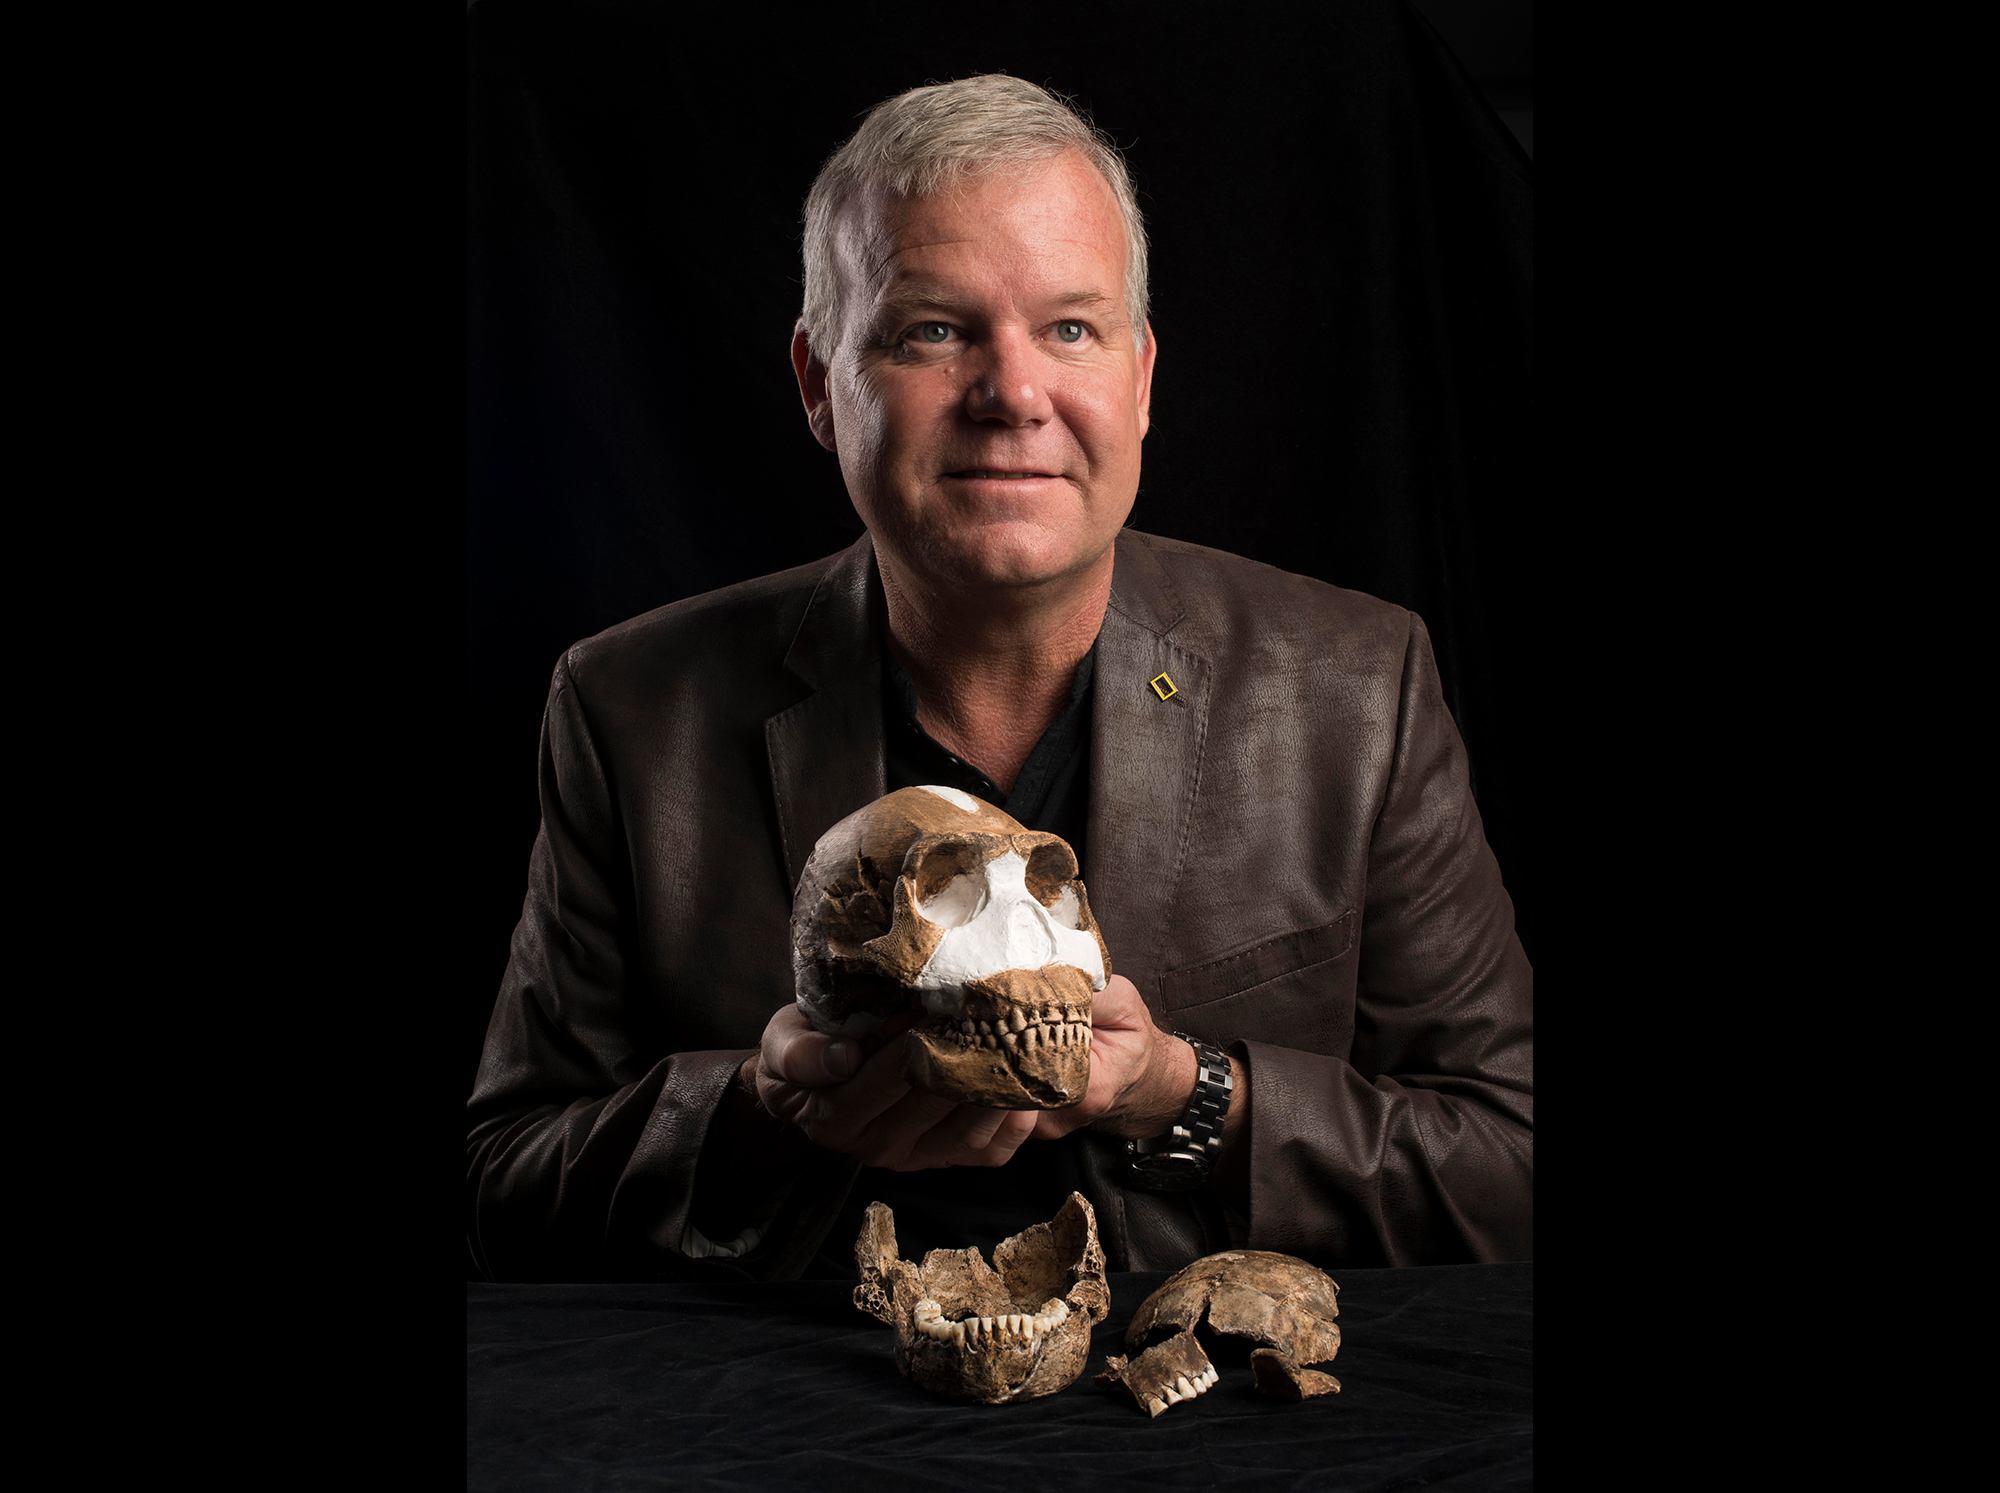 Lee-Berger-with-Homo-naledi.-cc-Wits-University-WR.jpg